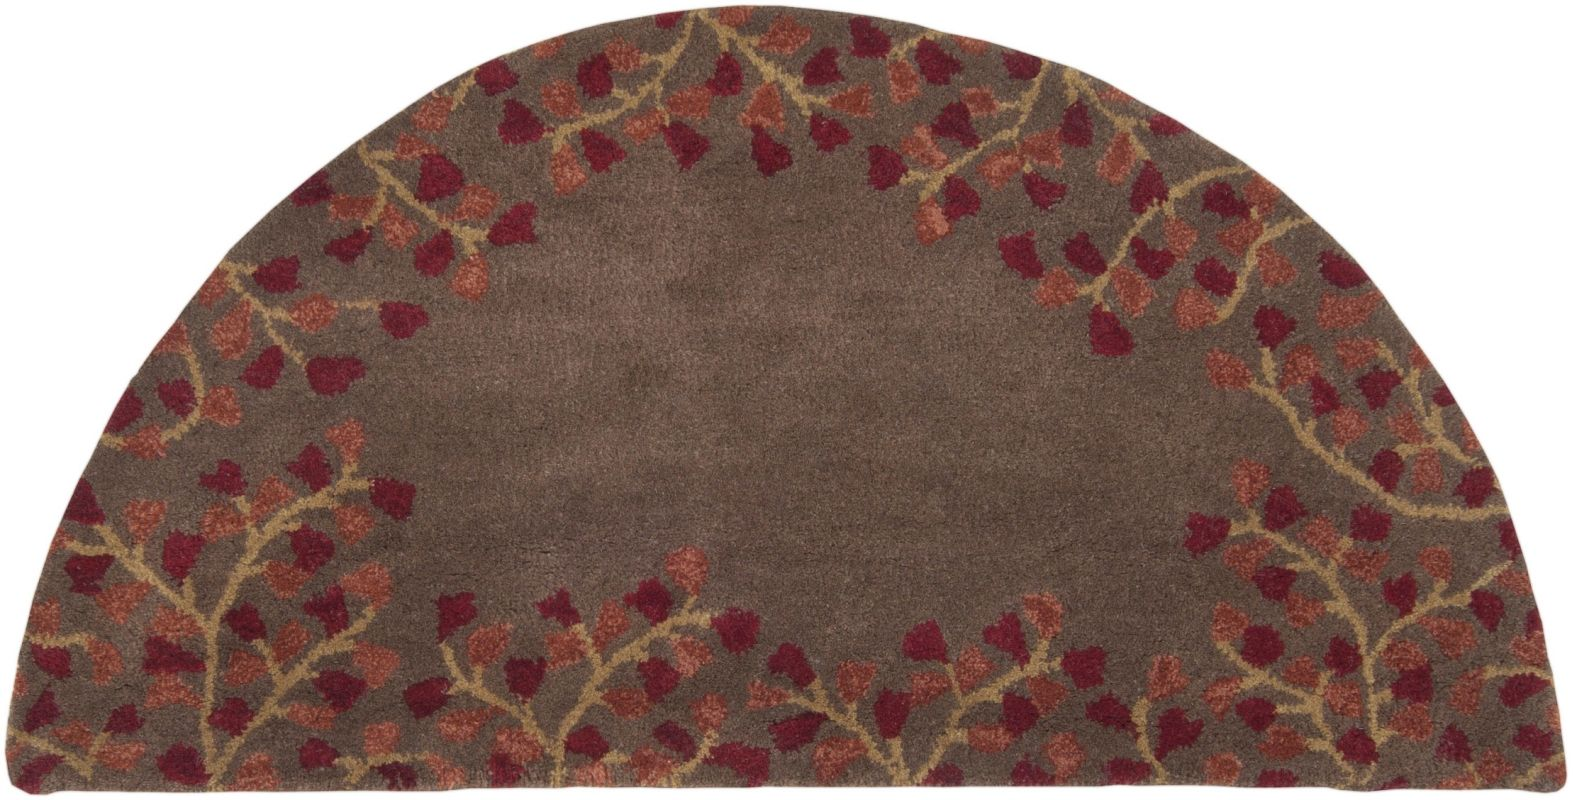 Surya ATH-5003 Athena Hand Tufted Wool Rug Red 2 x 4 Home Decor Rugs